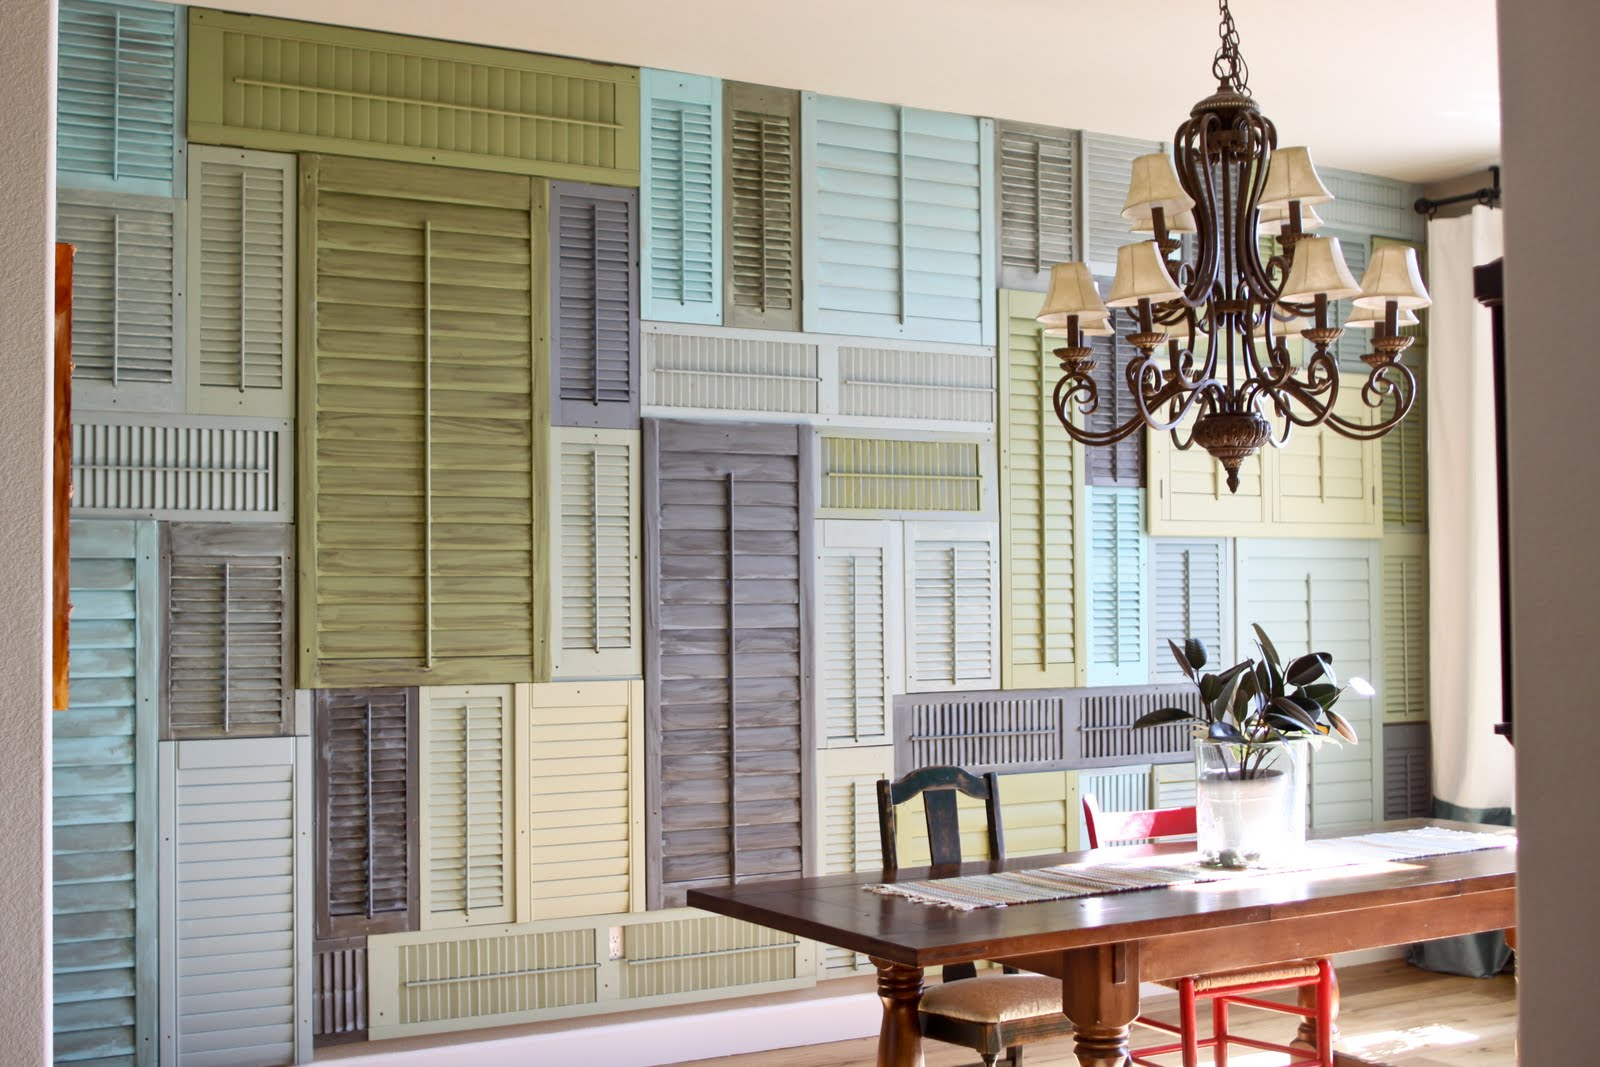 House shutter projects